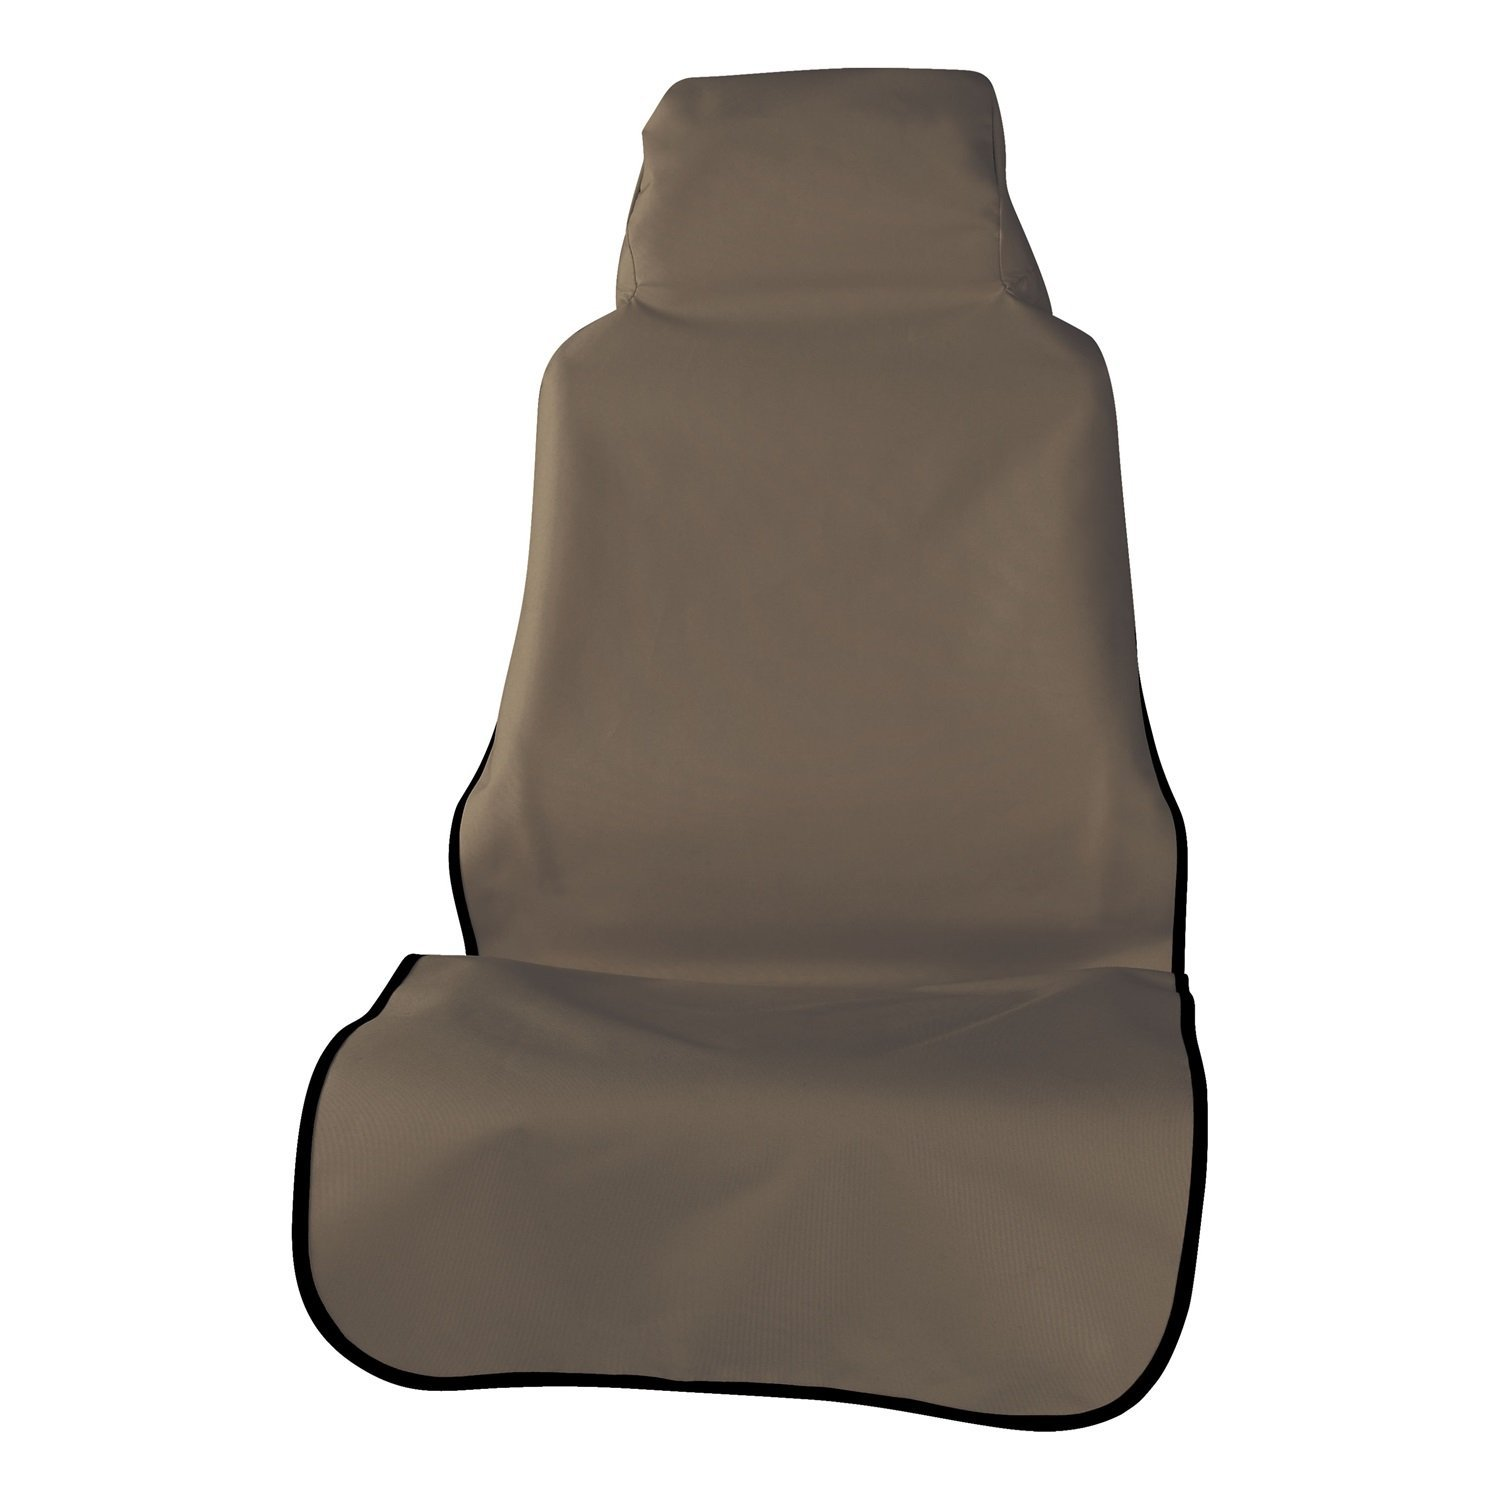 Aries Automotive 3142-18 Seat Defender